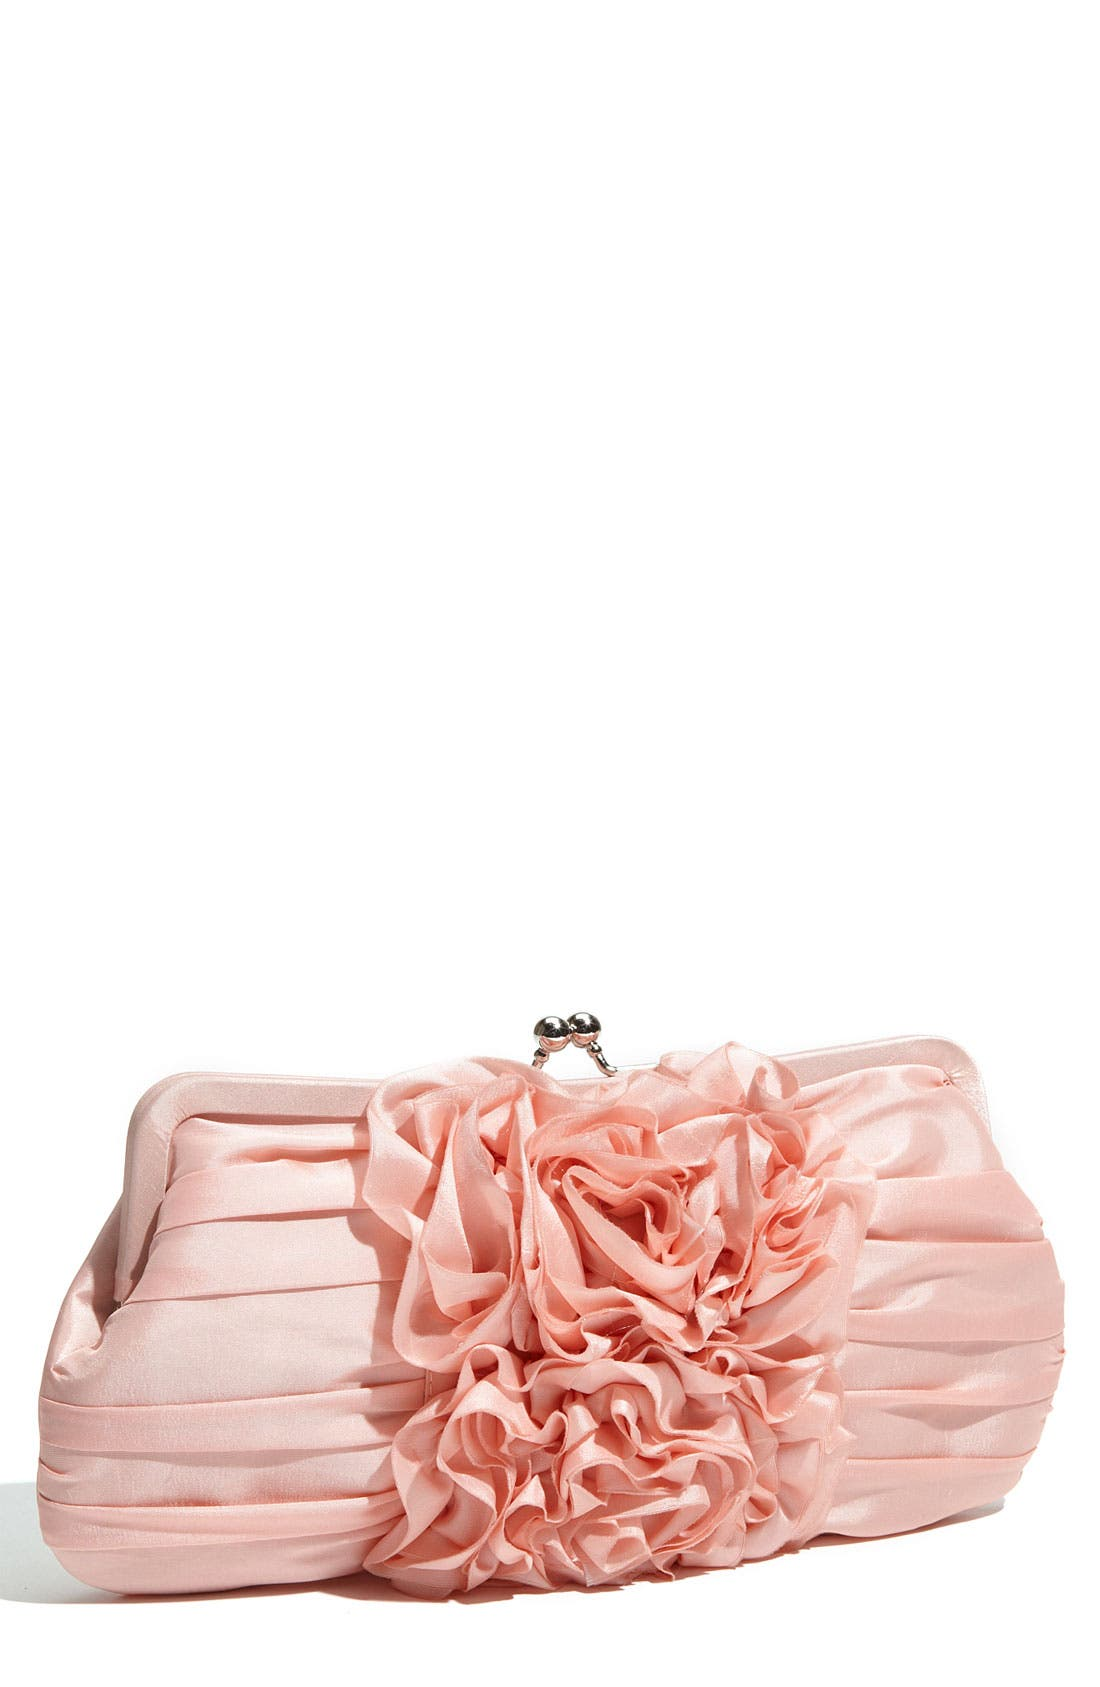 Alternate Image 1 Selected - Expressions NYC 'Silk Roses' Kisslock Frame Clutch